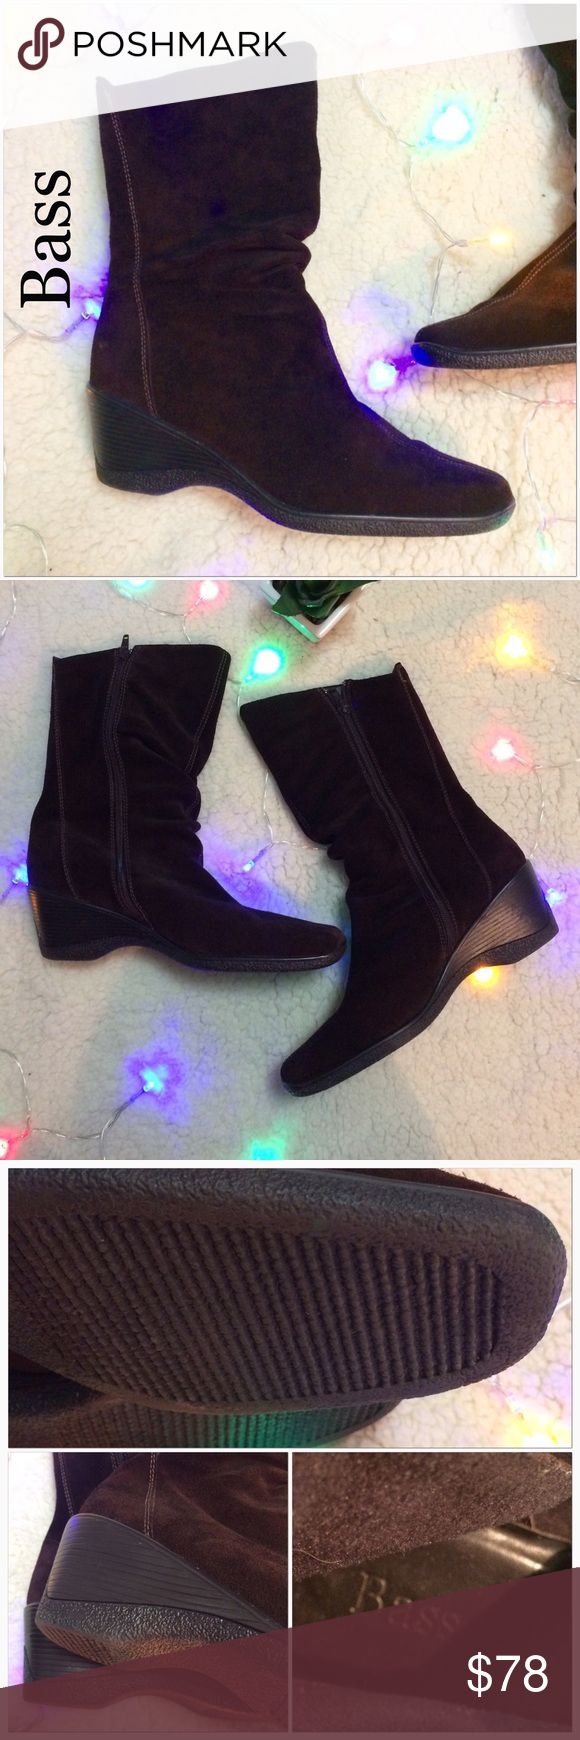 25  best ideas about Winter Snow Boots on Pinterest | Ugg style ...